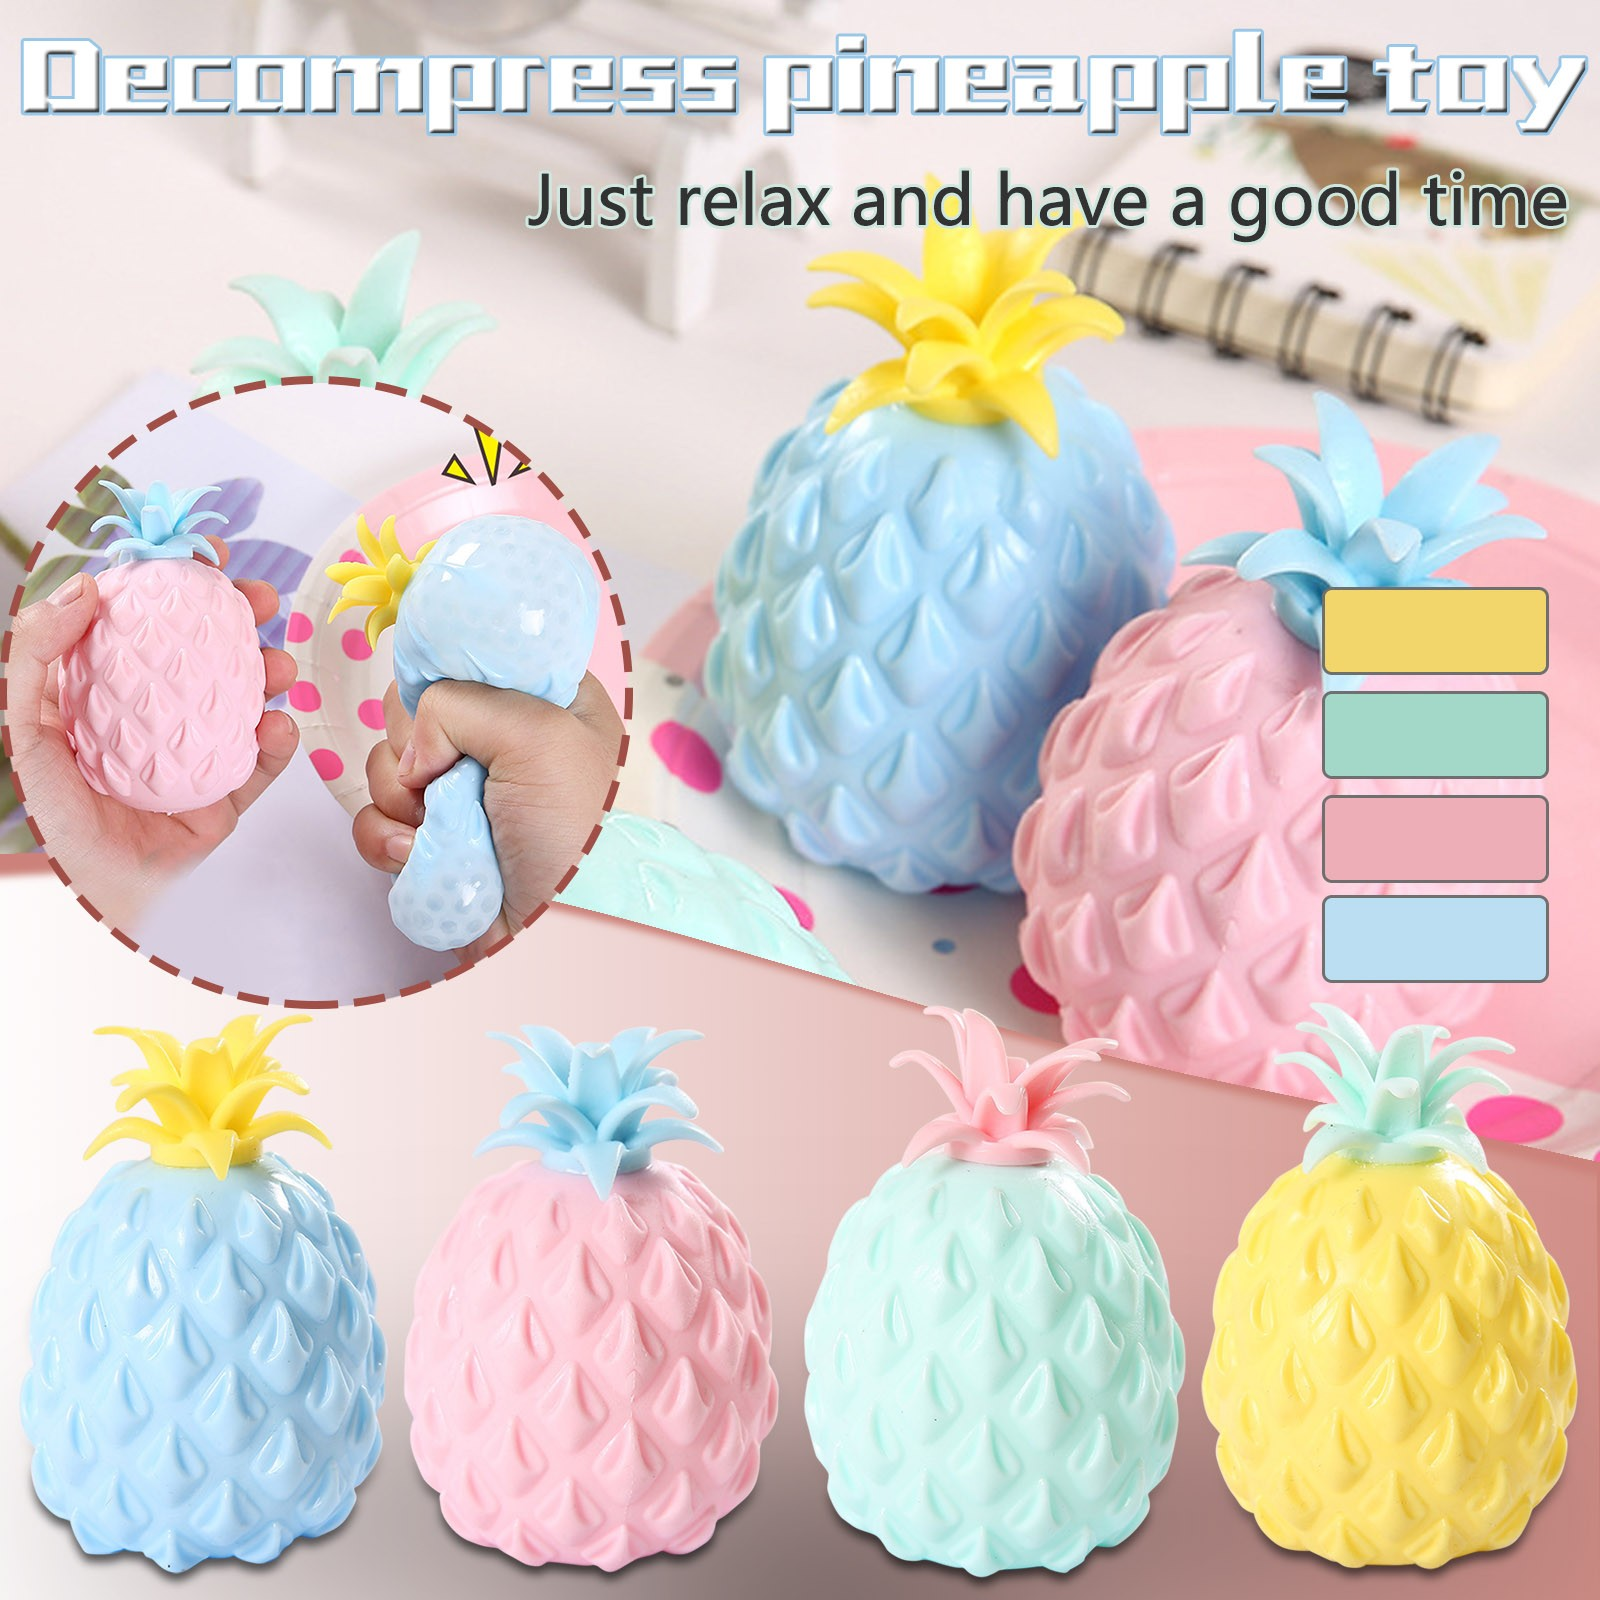 2021 Fidget Toys New Simulation Flour Pineapple Decompression Toy Office Pressure Release